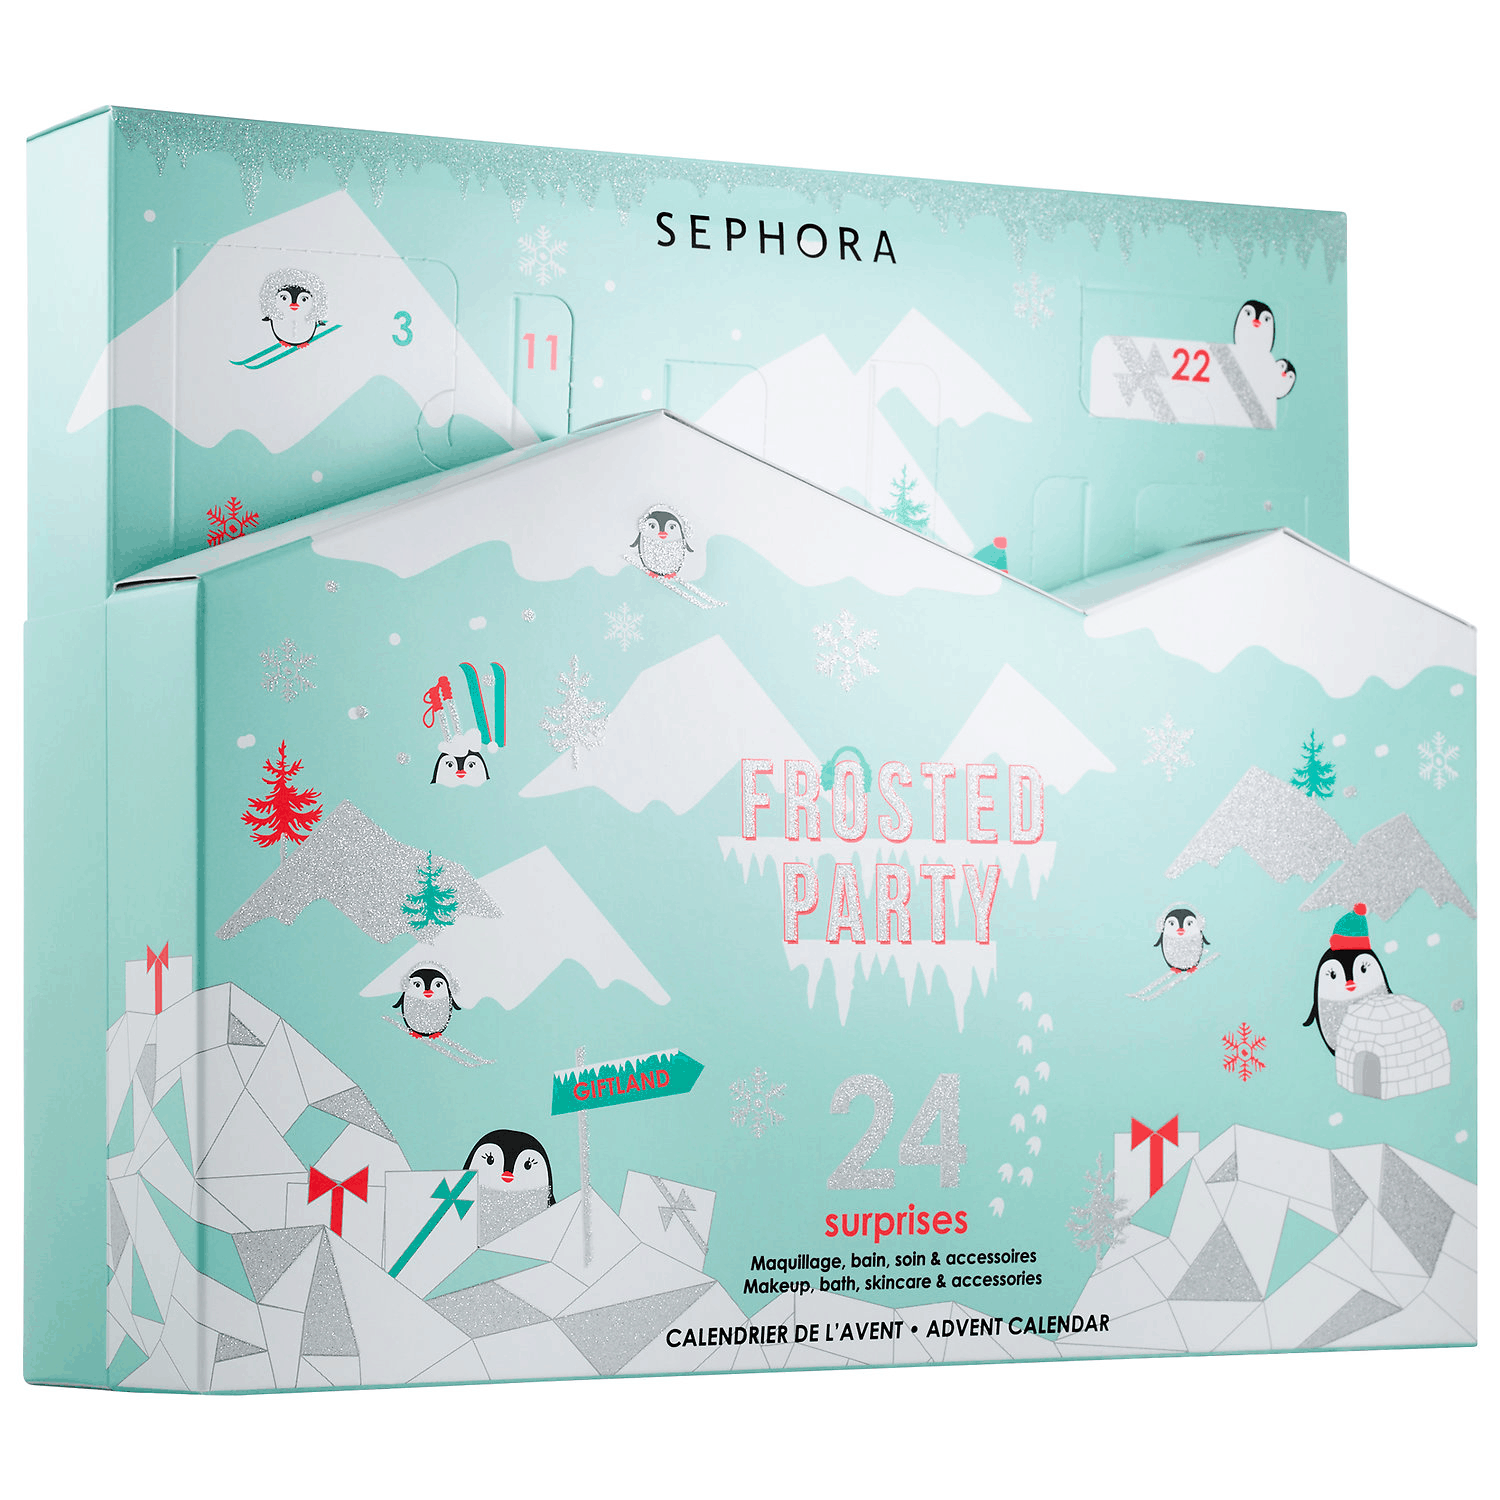 2019 Sephora Advent Calendar Available Now + Coupons